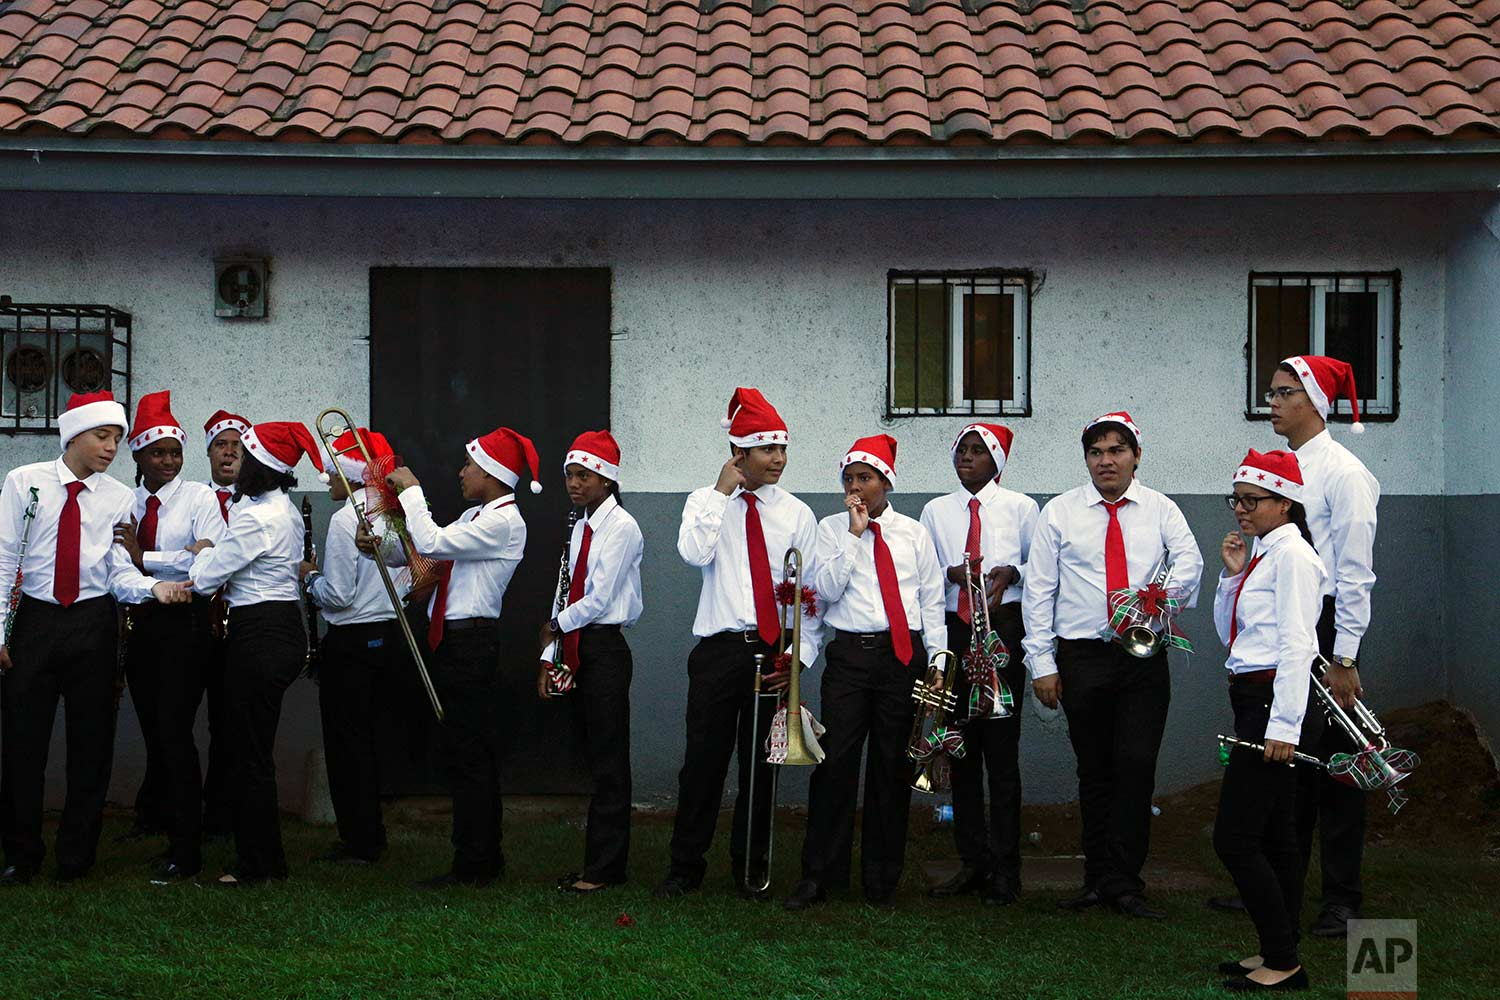 High school student music band members wait to play in the annual Christmas parade in Panama City, Sunday, Dec. 10, 2017. (AP Photo/Arnulfo Franco)